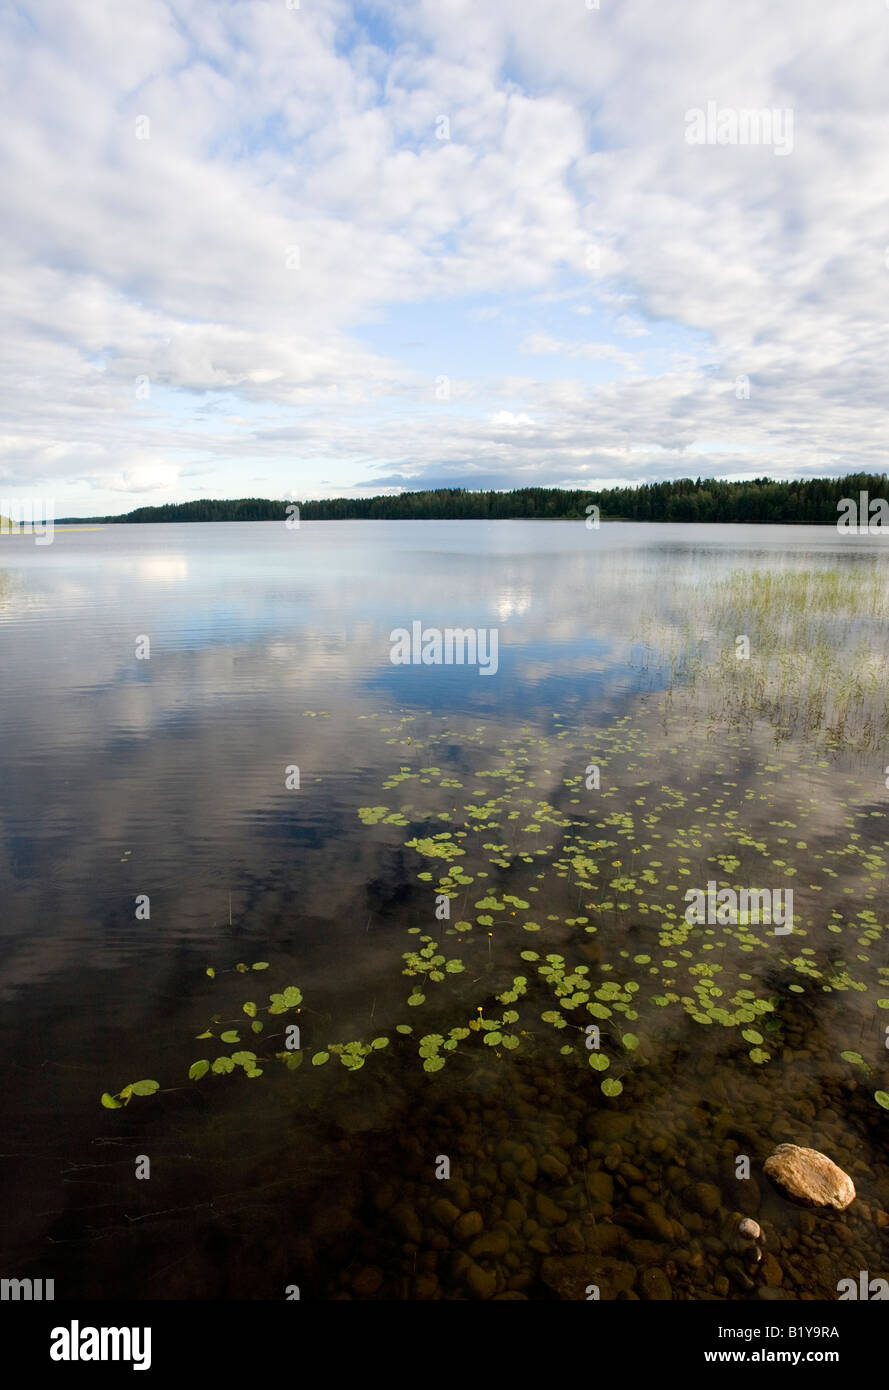 Scene from Lake Suontee Finland - Stock Image